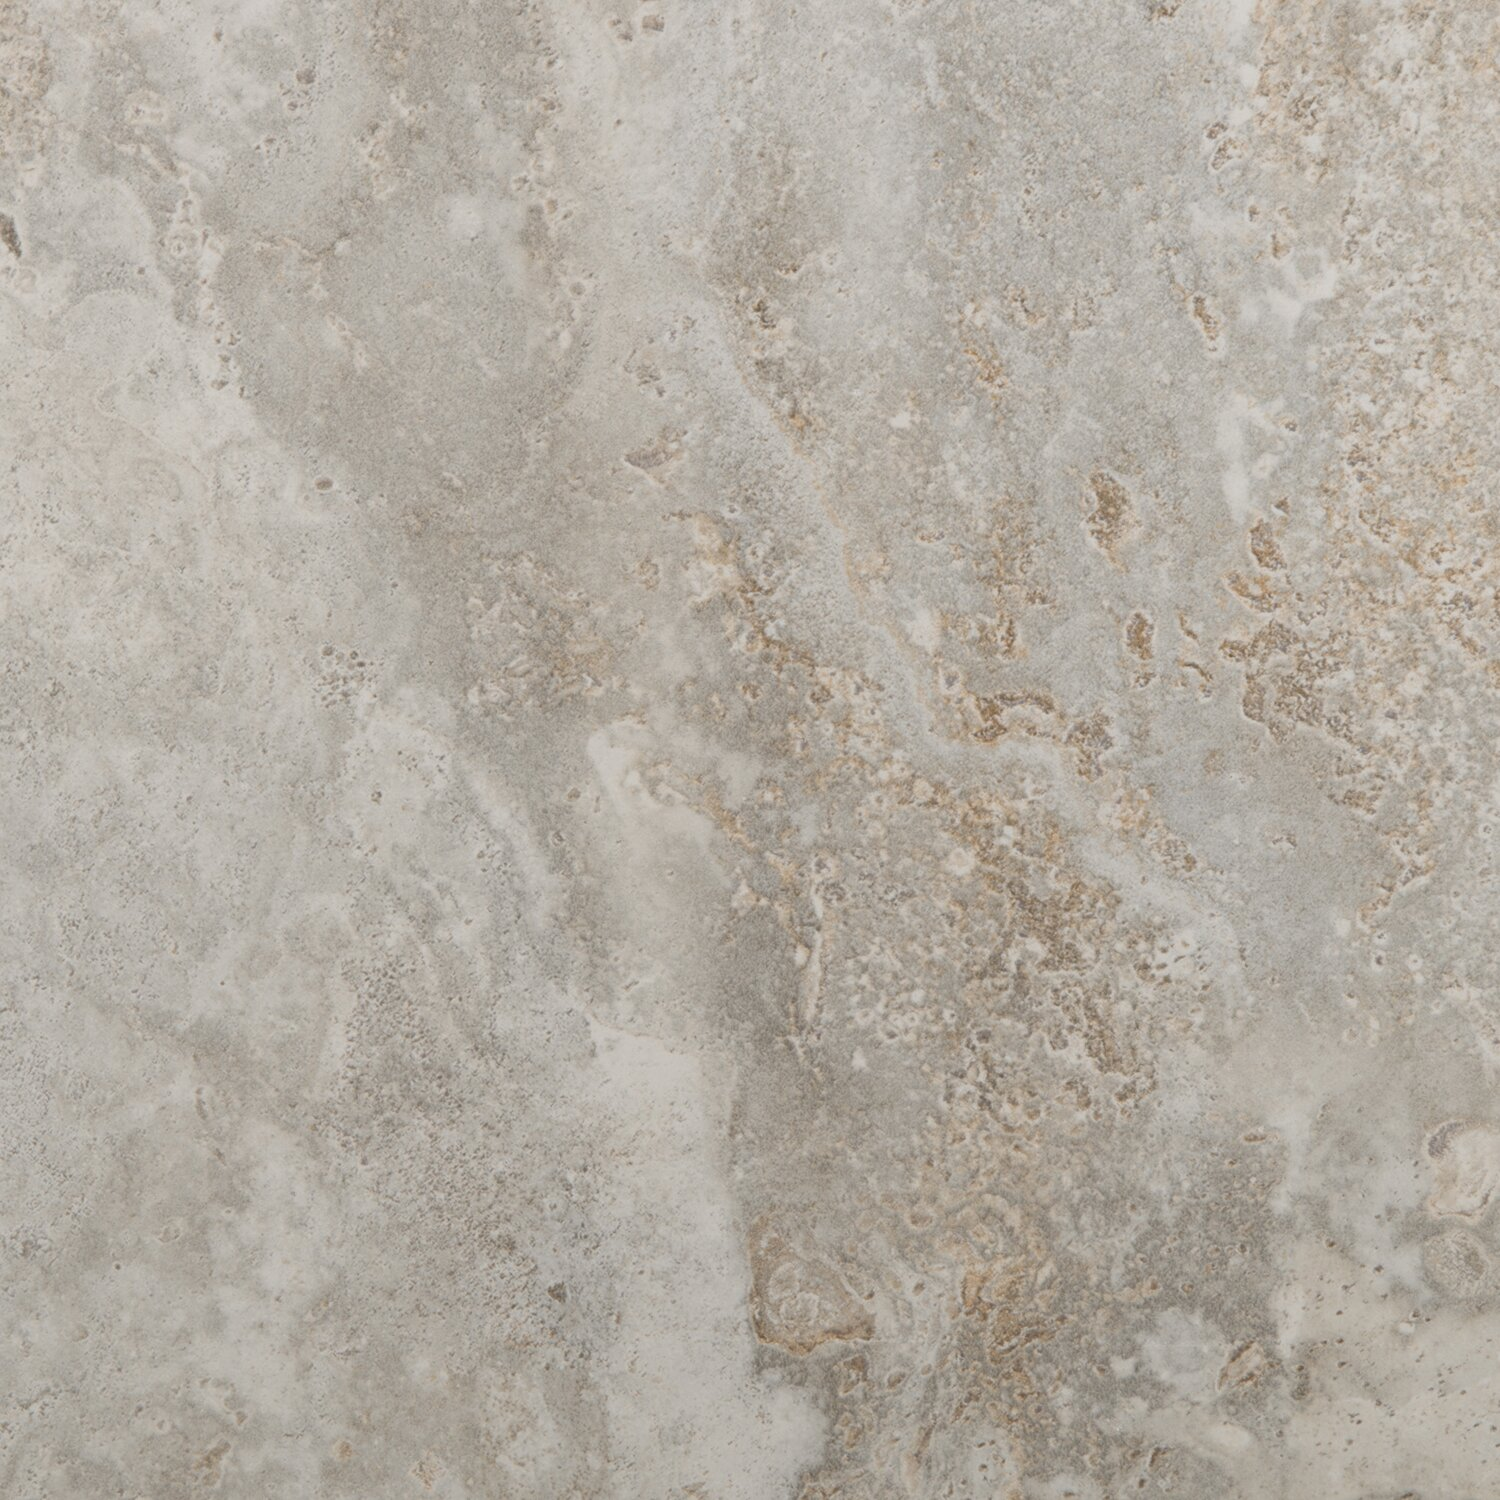 Emser Tile Lucerne 13 x 13 Porcelain Field Tile in